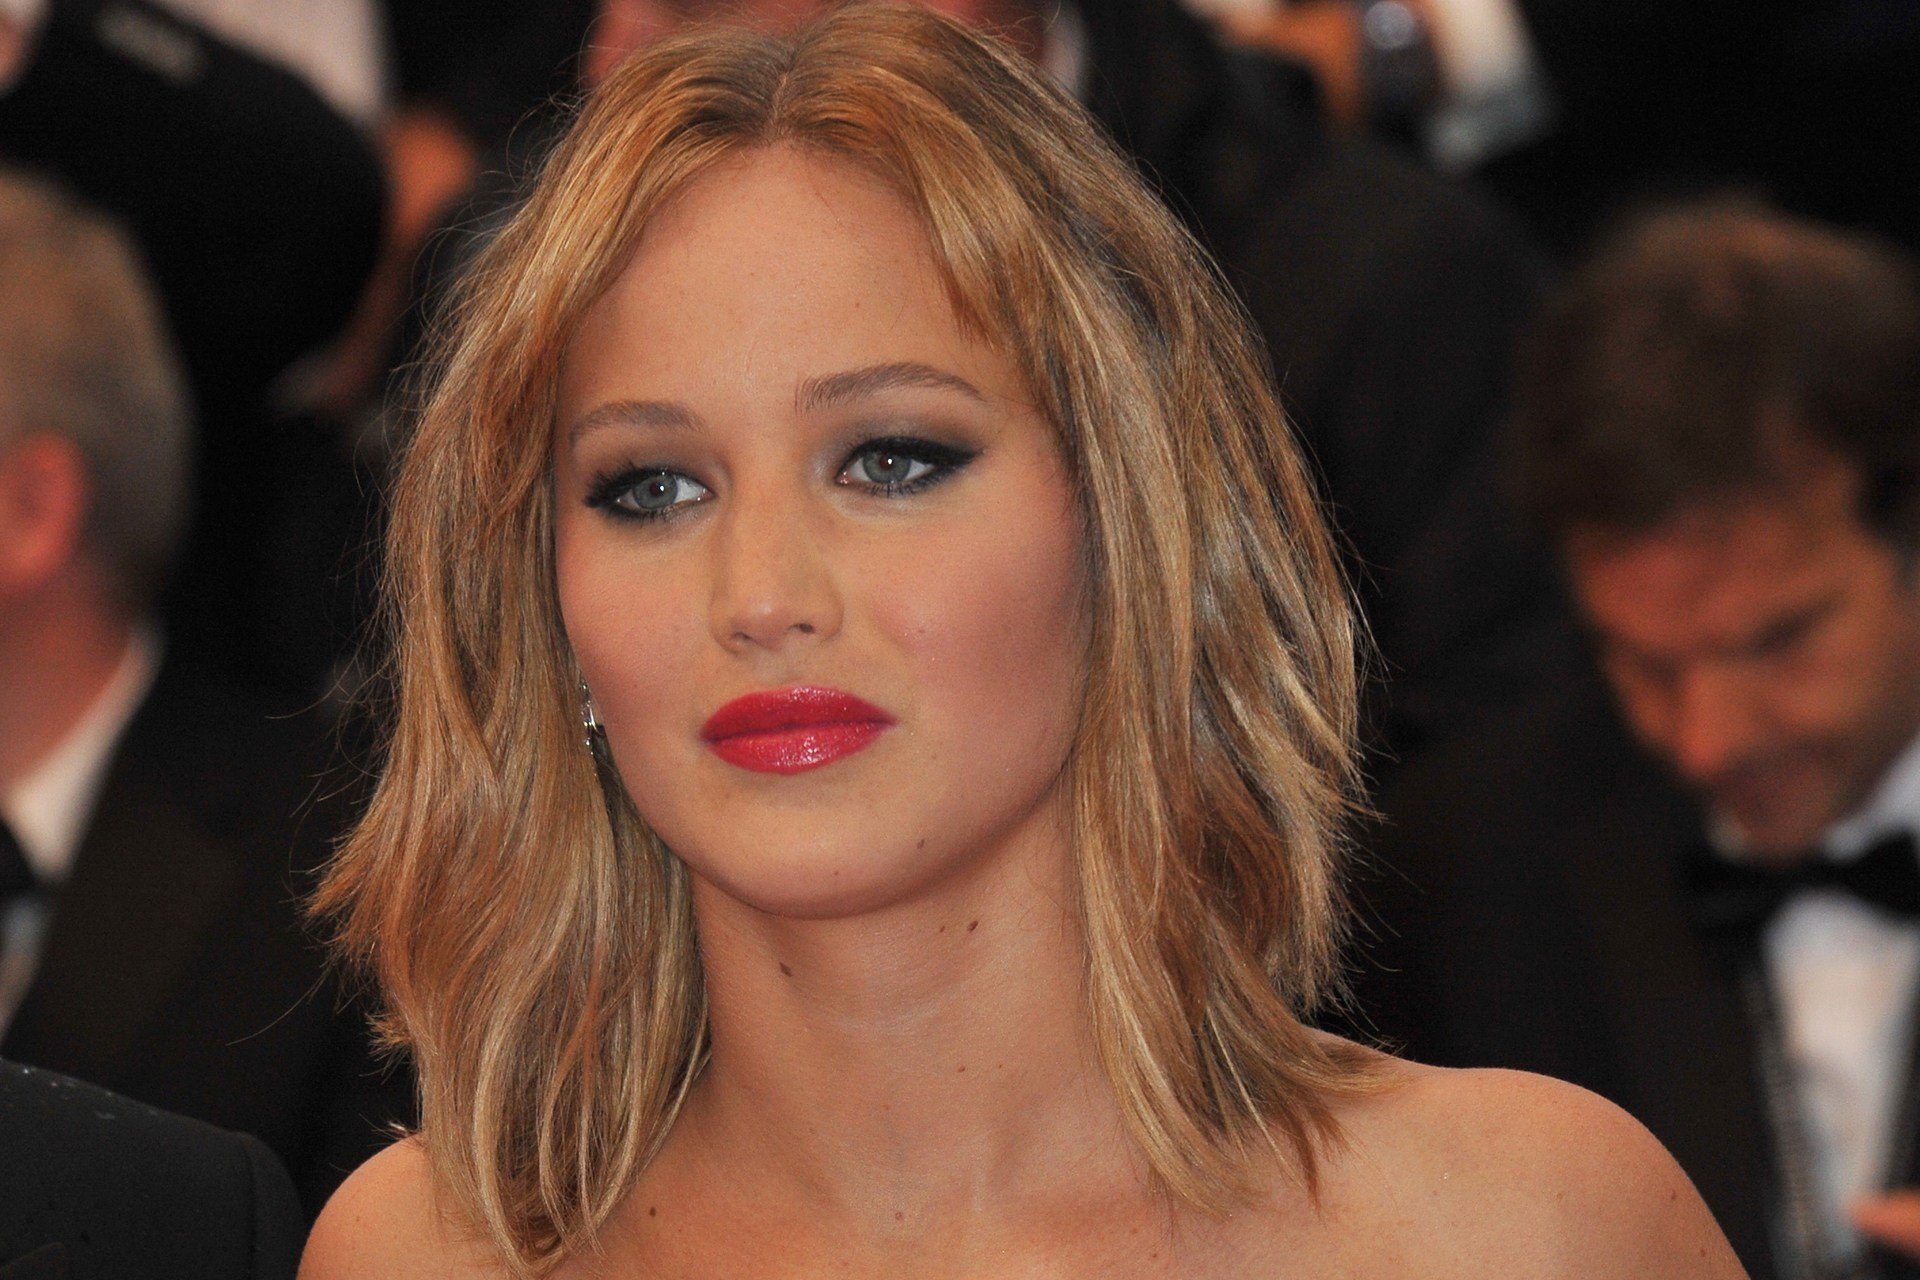 Jennifer lawrence nudes leaked after apple icloud exploit hacked